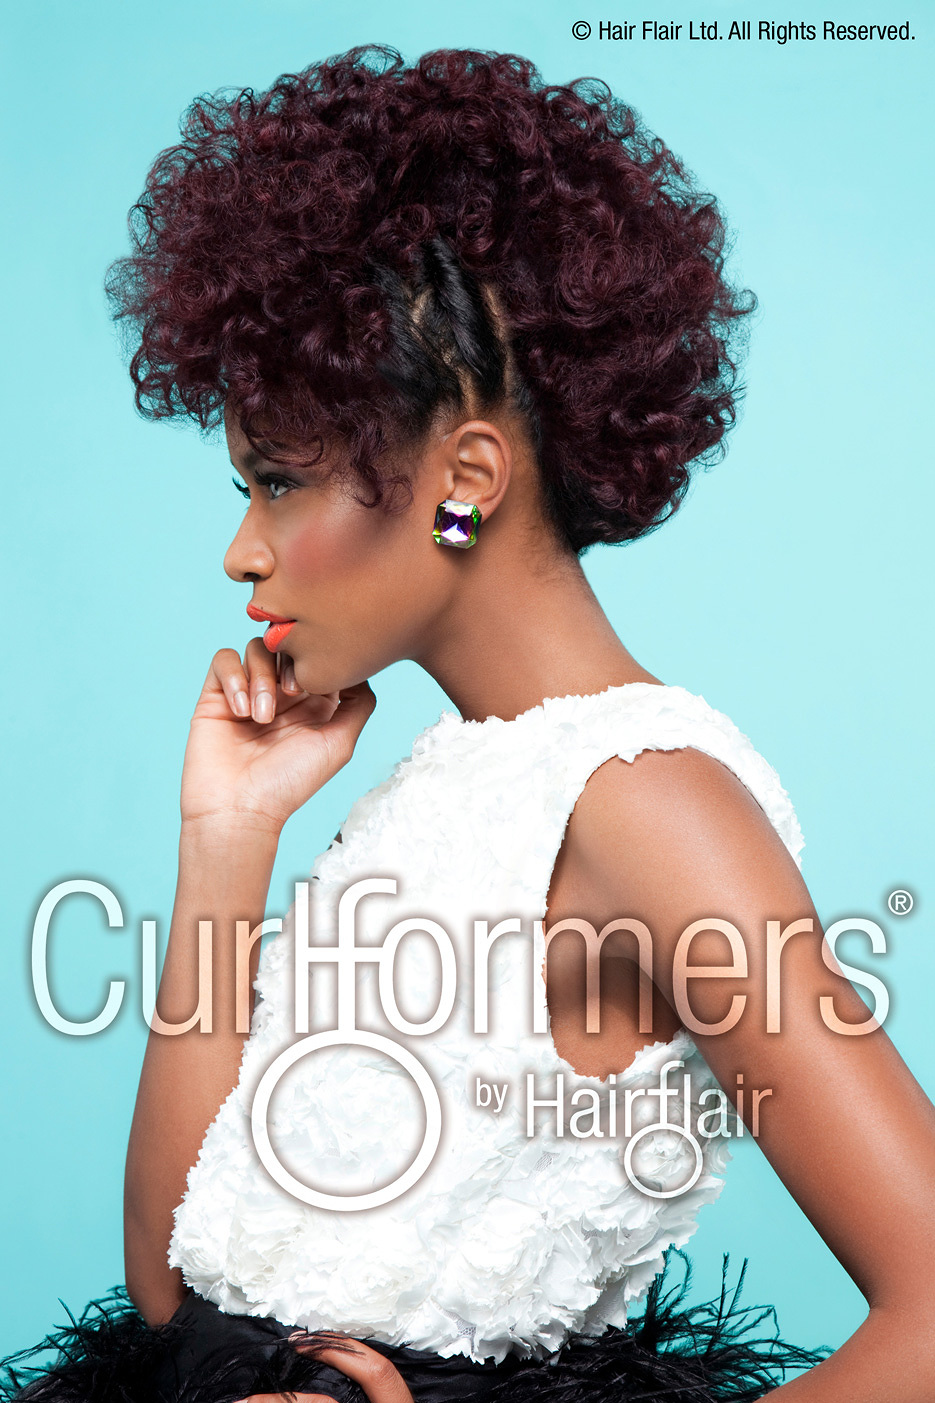 PageImage-530282-5161817-Curlformers_BH_Image04